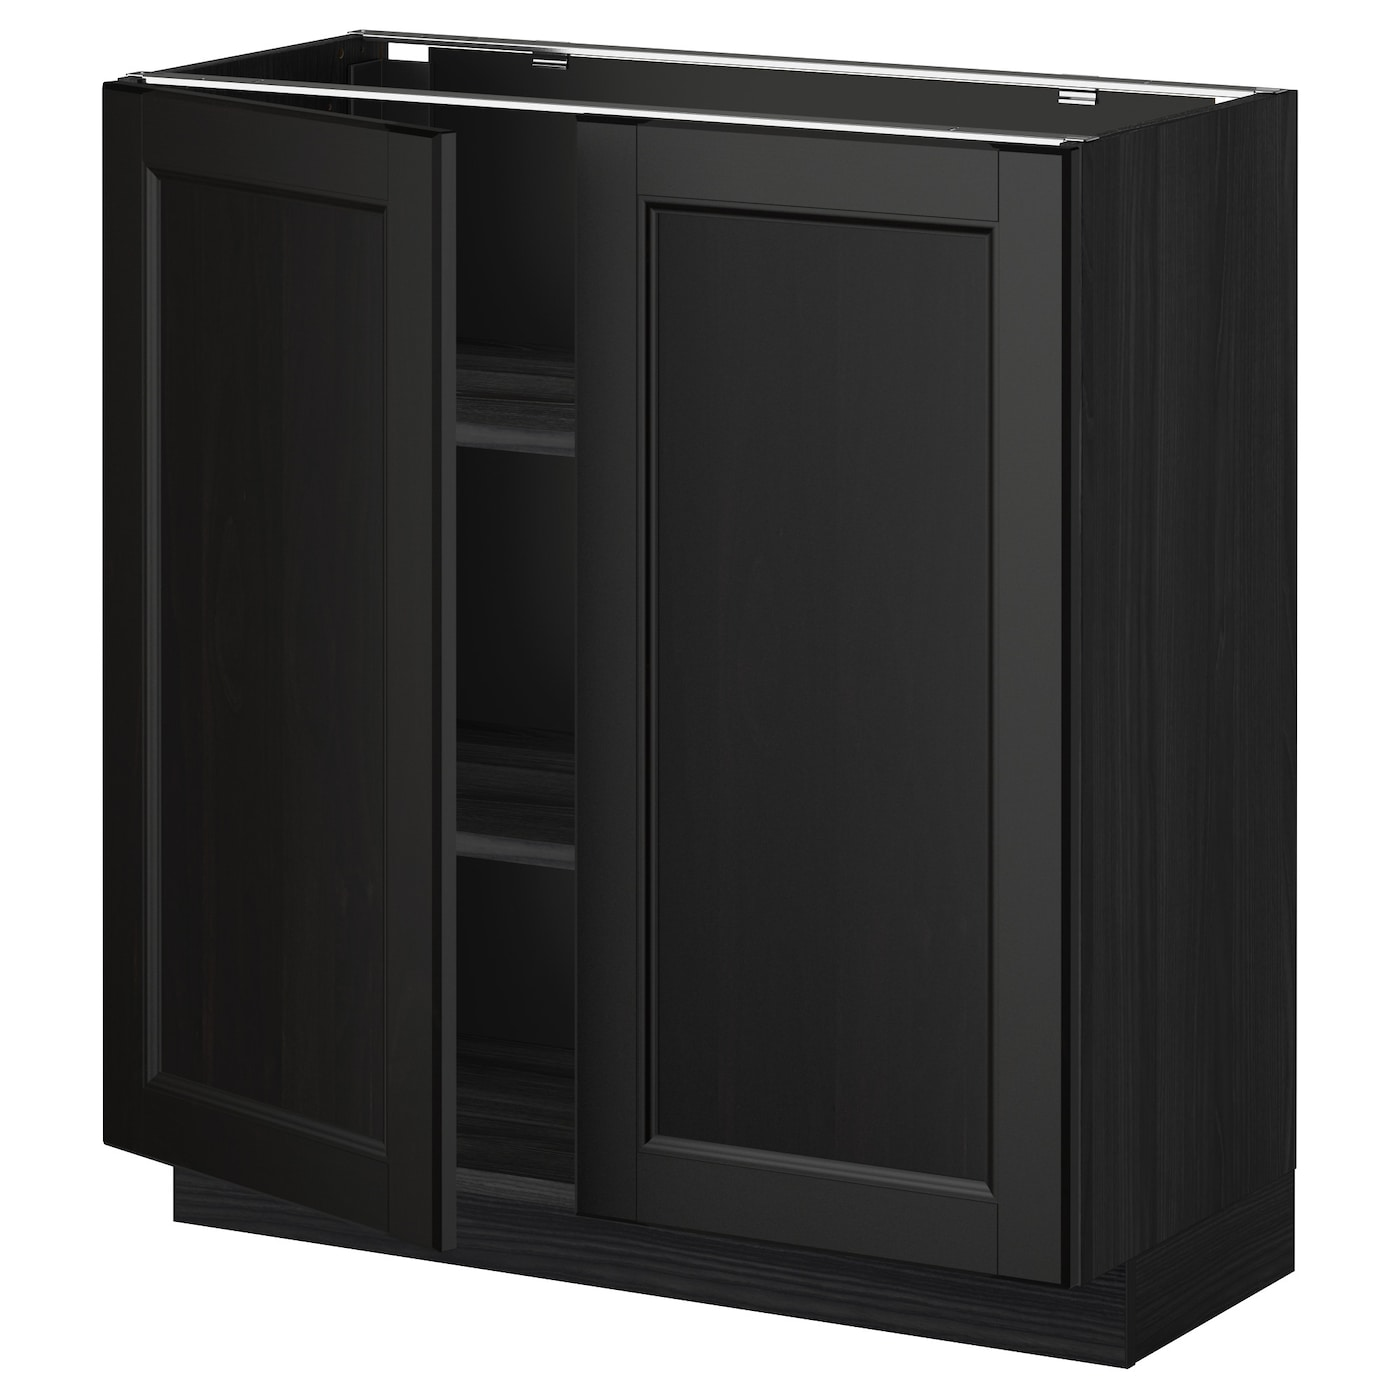 Metod Base Cabinet With Shelves 2 Doors Black Laxarby Black Brown 80x37 Cm Ikea